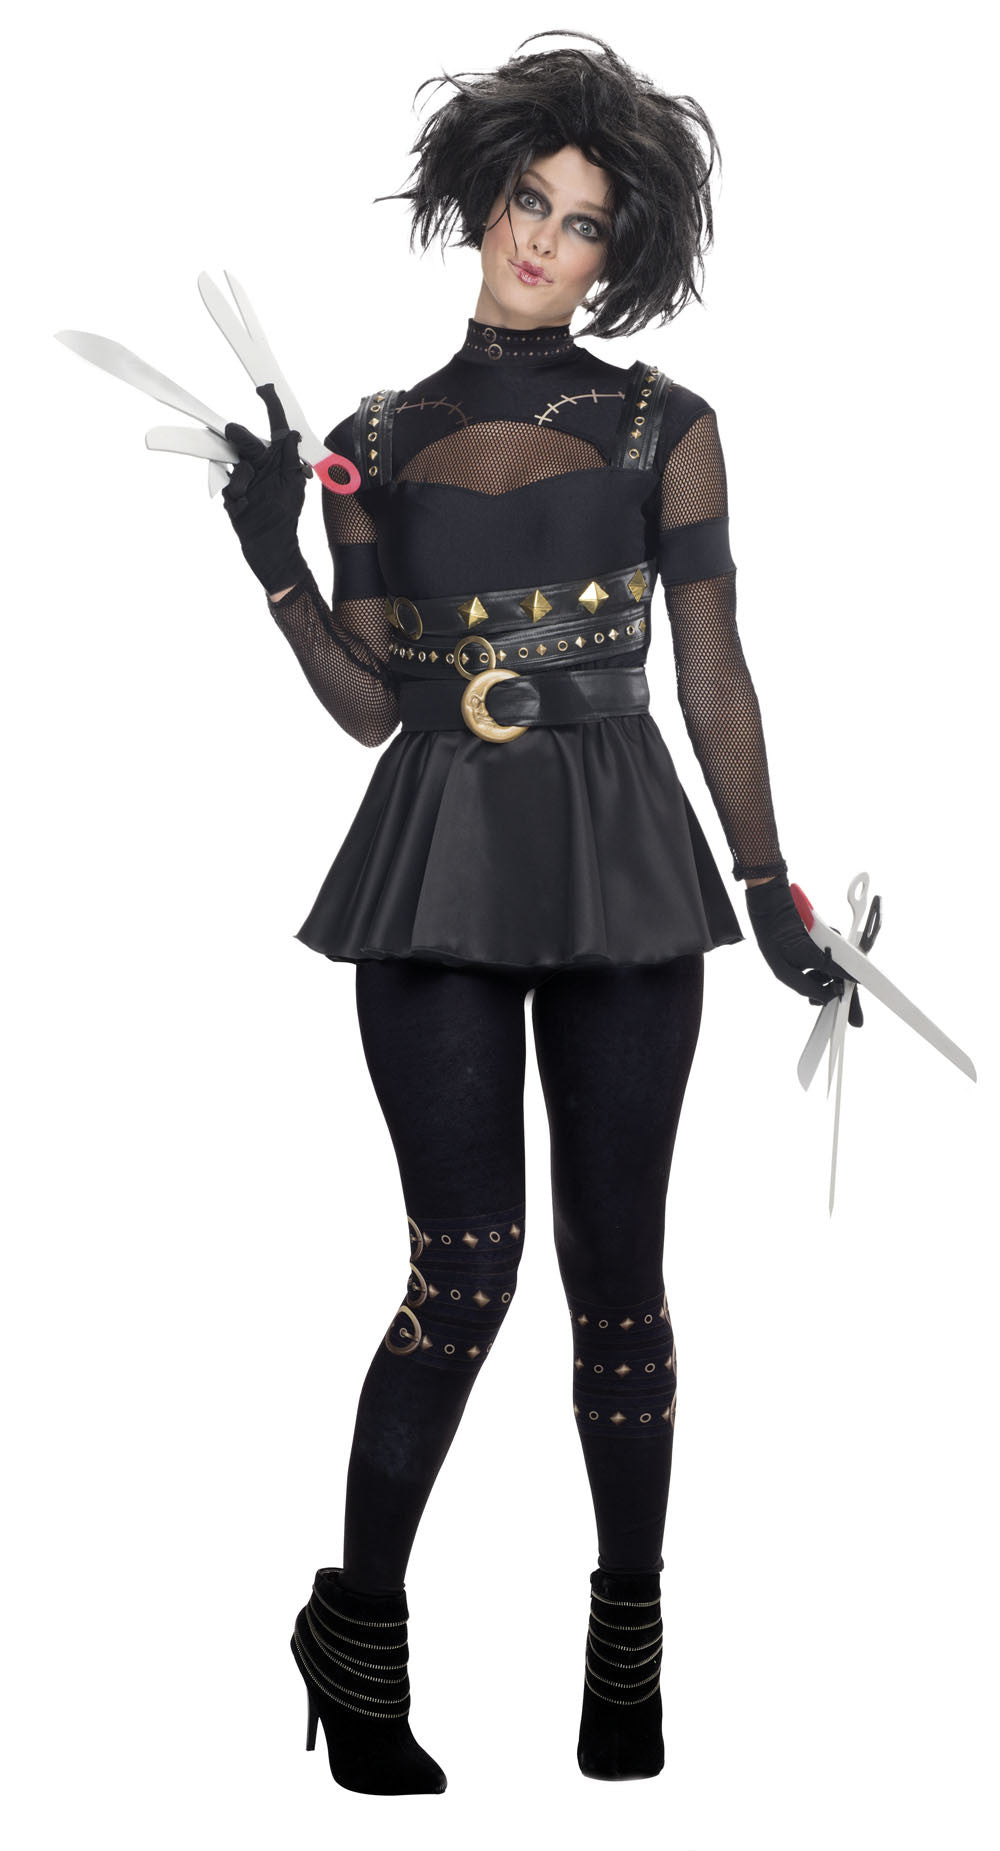 EDWARD SCISSORHANDS FEMALE COSTUME - SIZE M